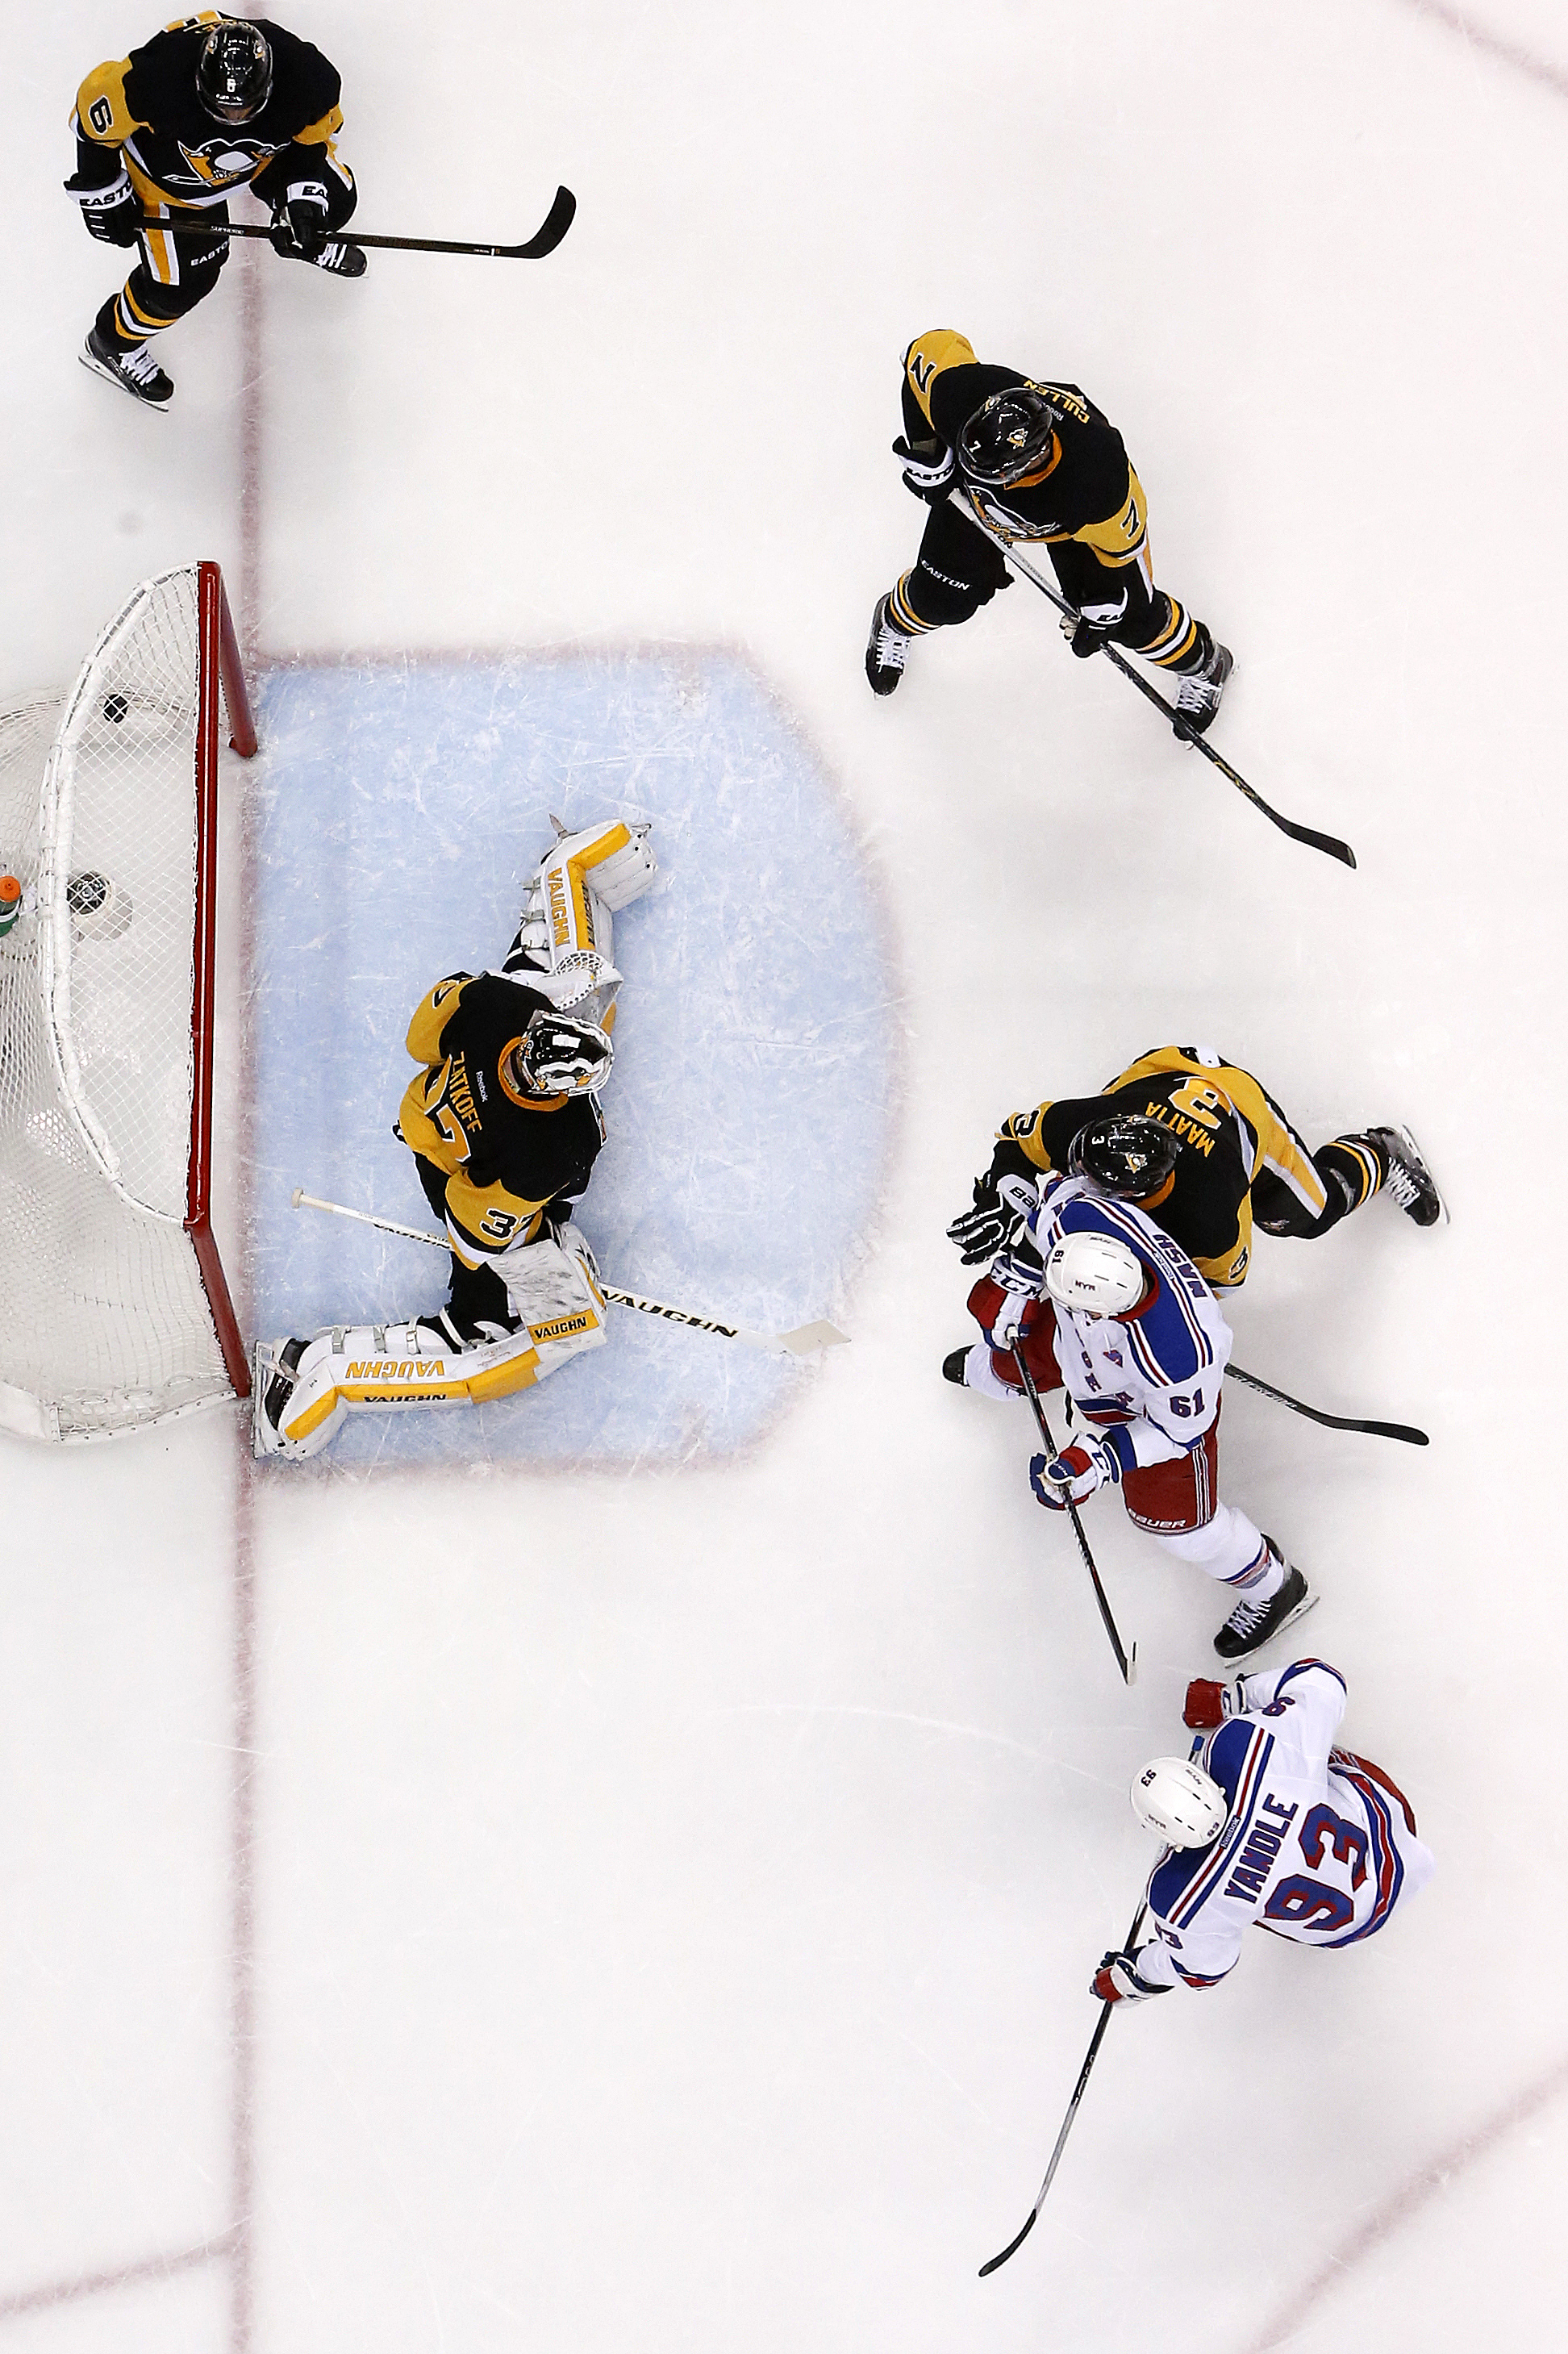 New York Rangers' Keith Yandle (93) puts the puck past Pittsburgh Penguins goalie Jeff Zatkoff (37) for a goal during the second period of Game 2 in the first round of the NHL Stanley Cup playoffs in Pittsburgh, Saturday, April 16, 2016. The Rangers won 4